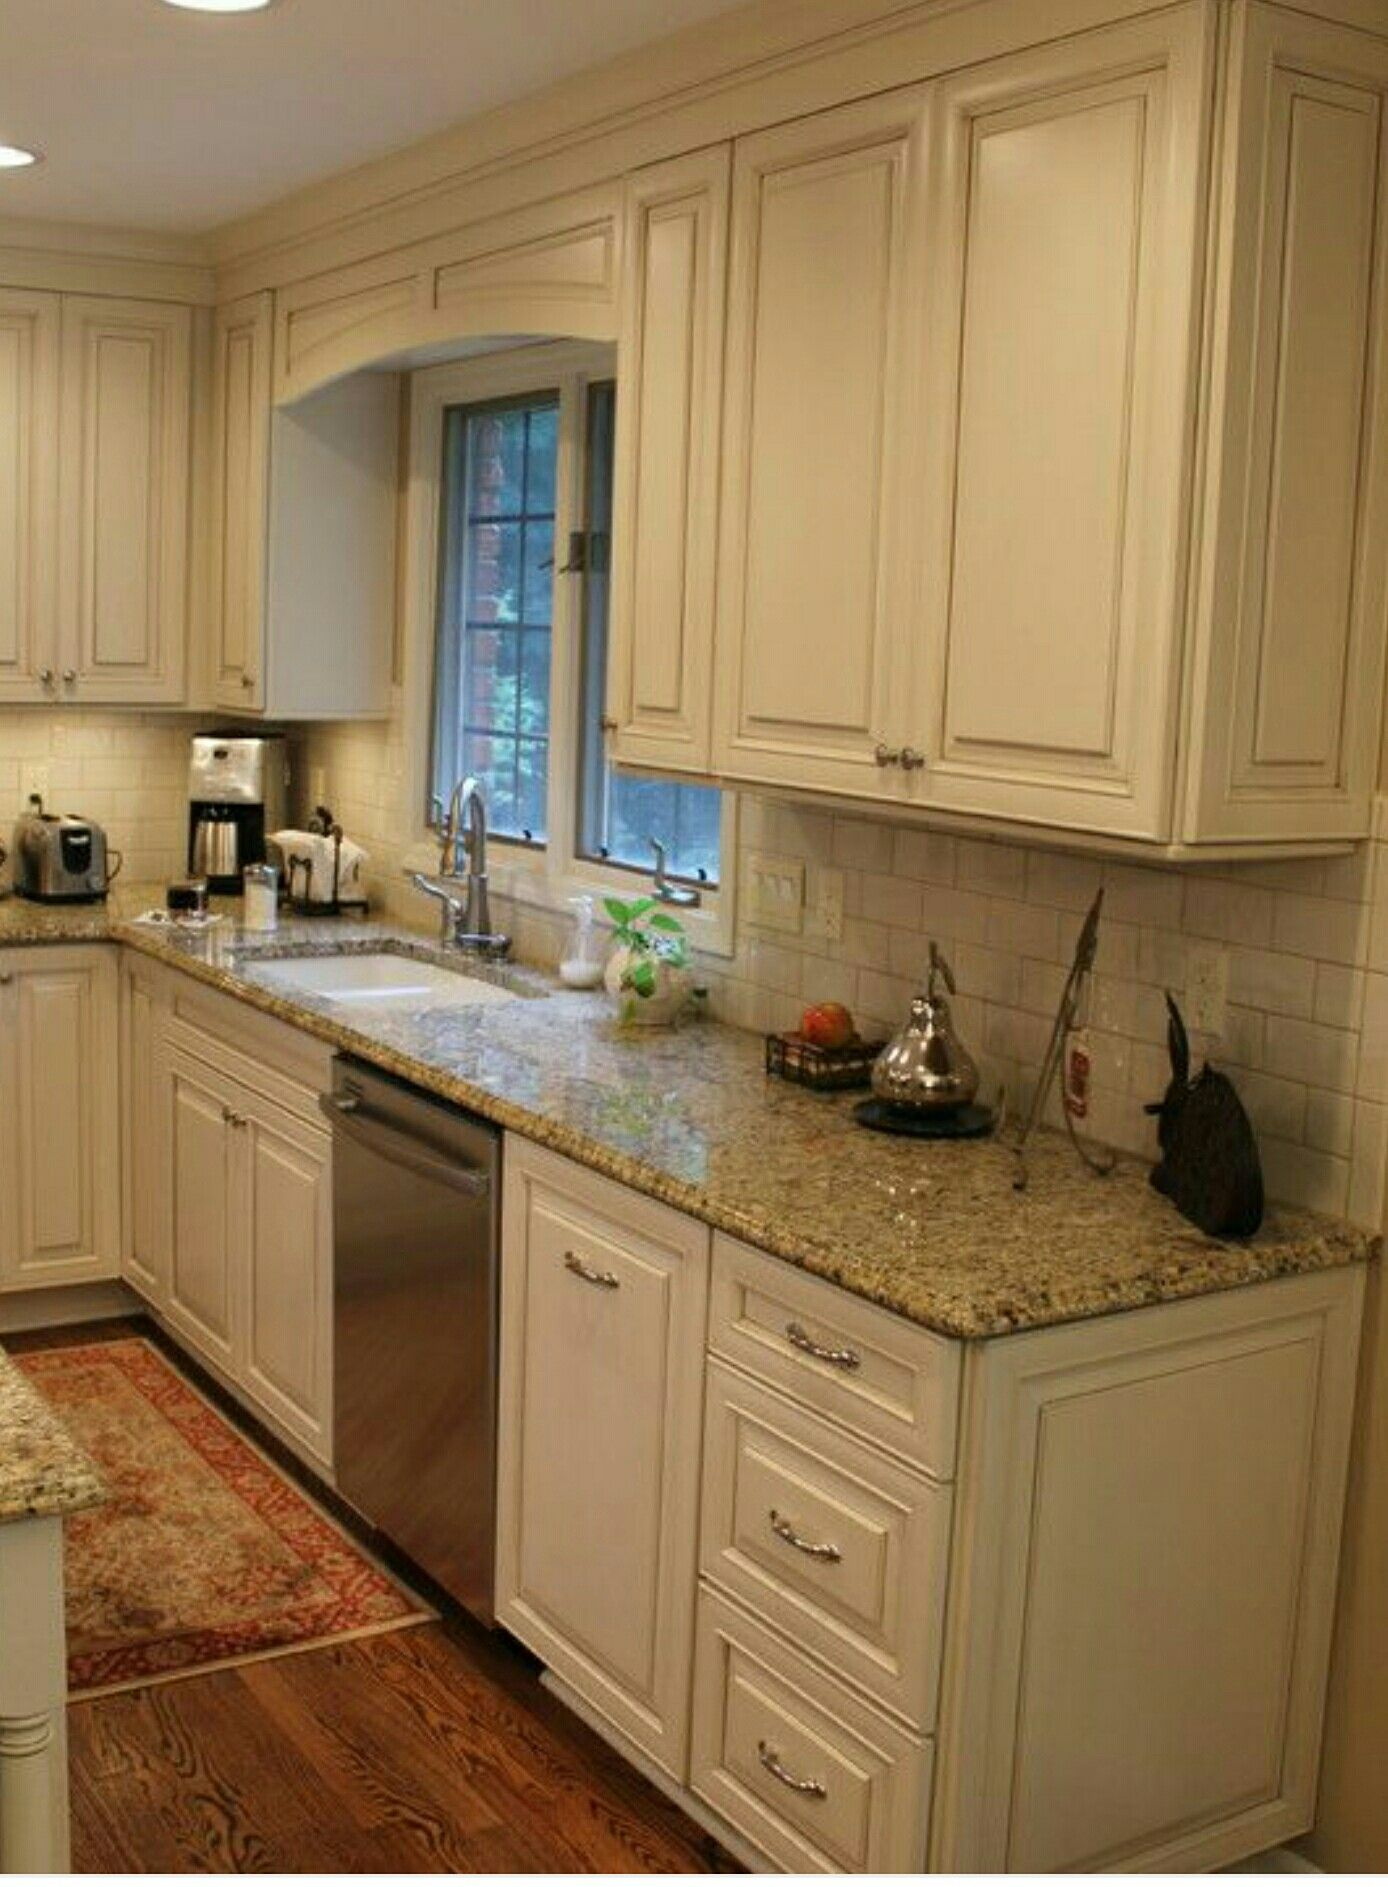 White Cabinets Subway Tile Beige Granite Countertops